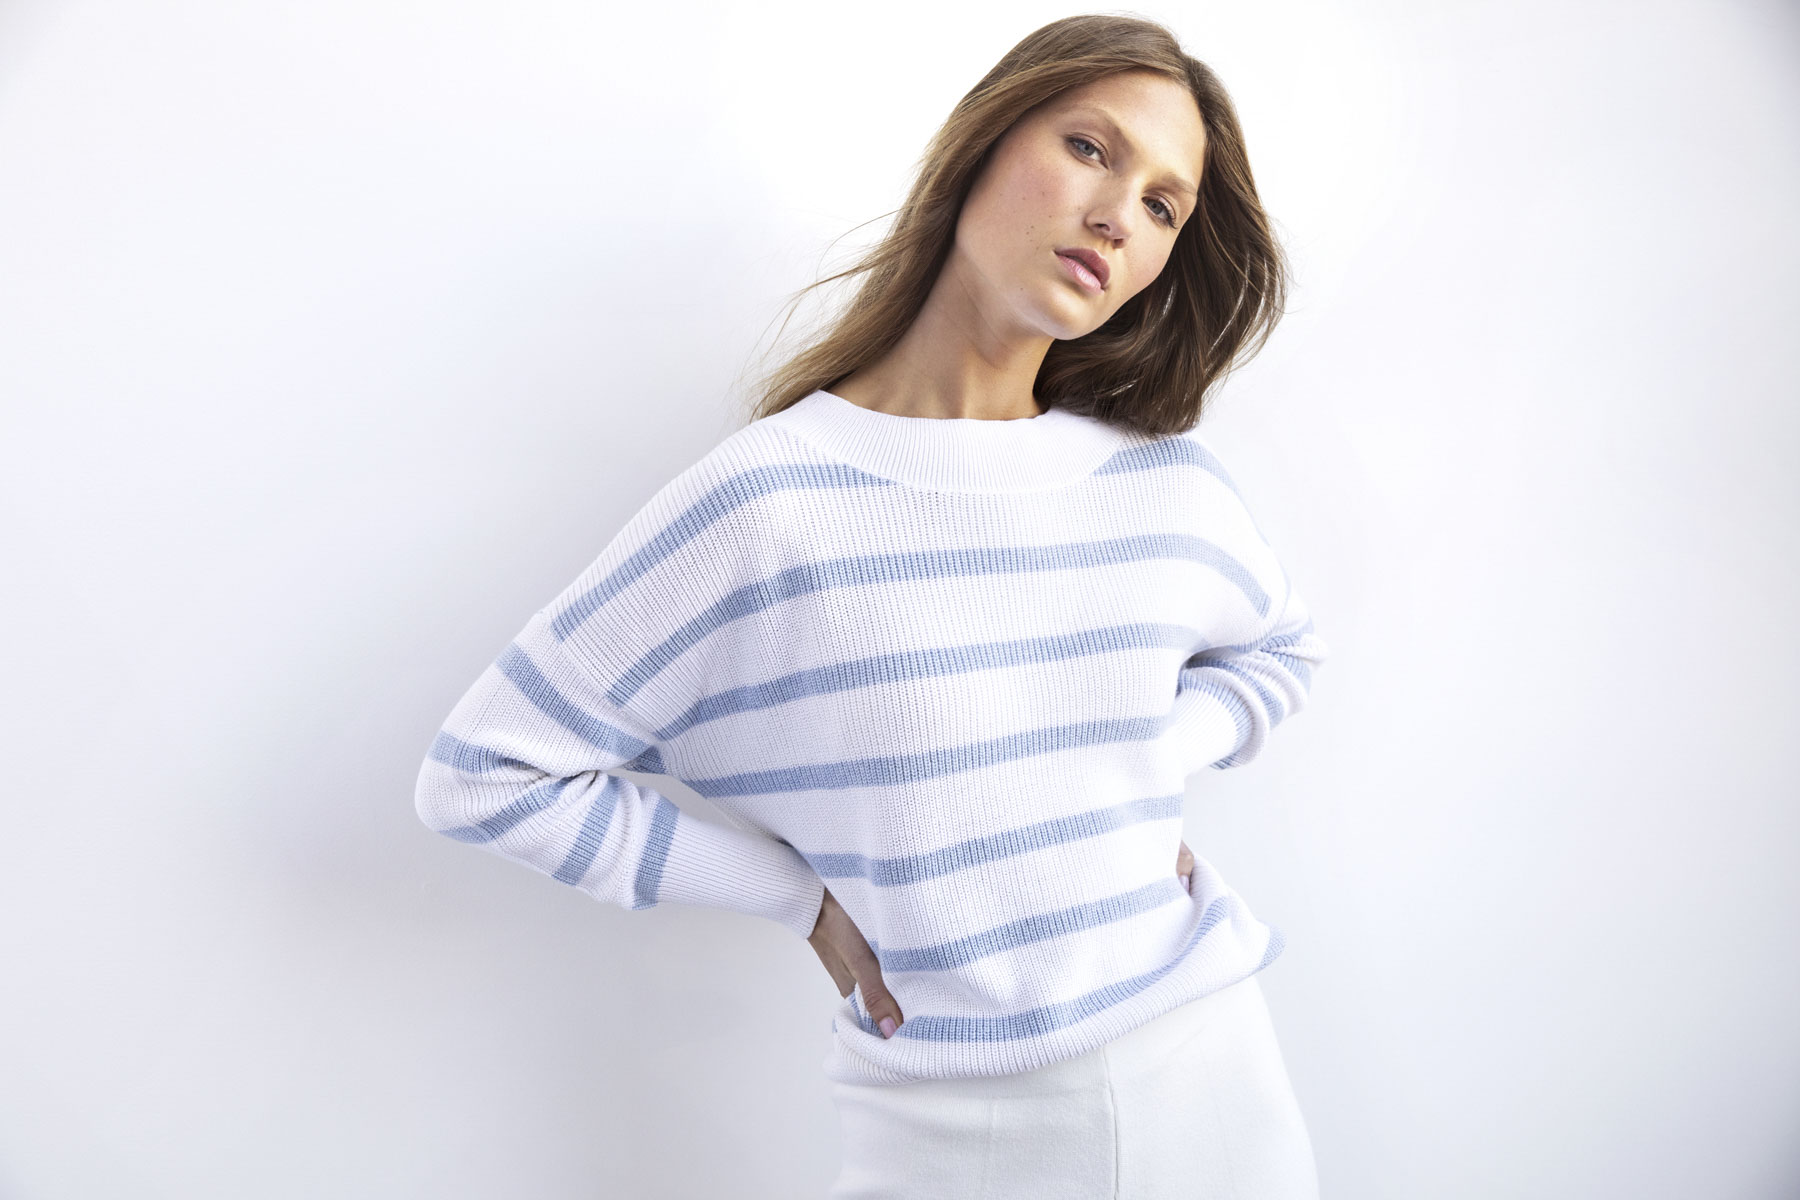 08Editorial05_181_STRIPE_5336_1